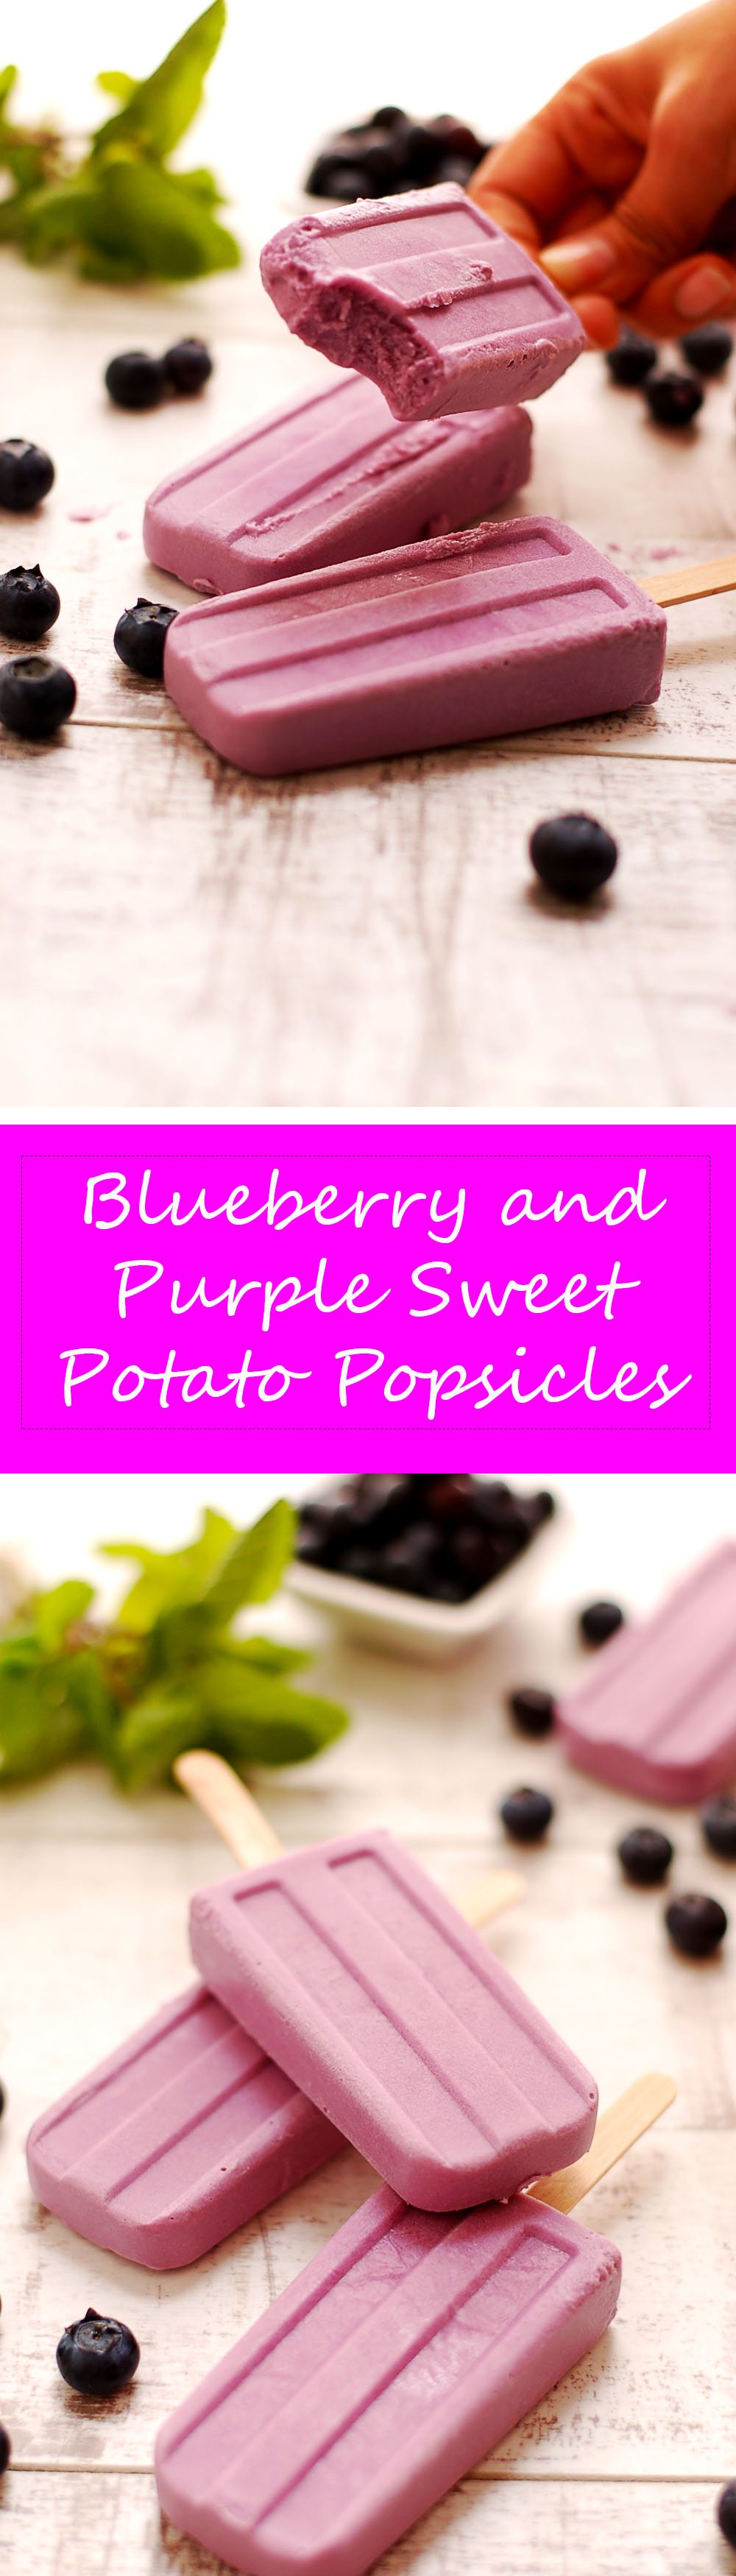 Blueberry and Purple Sweet Potato Vegan Popsicles!